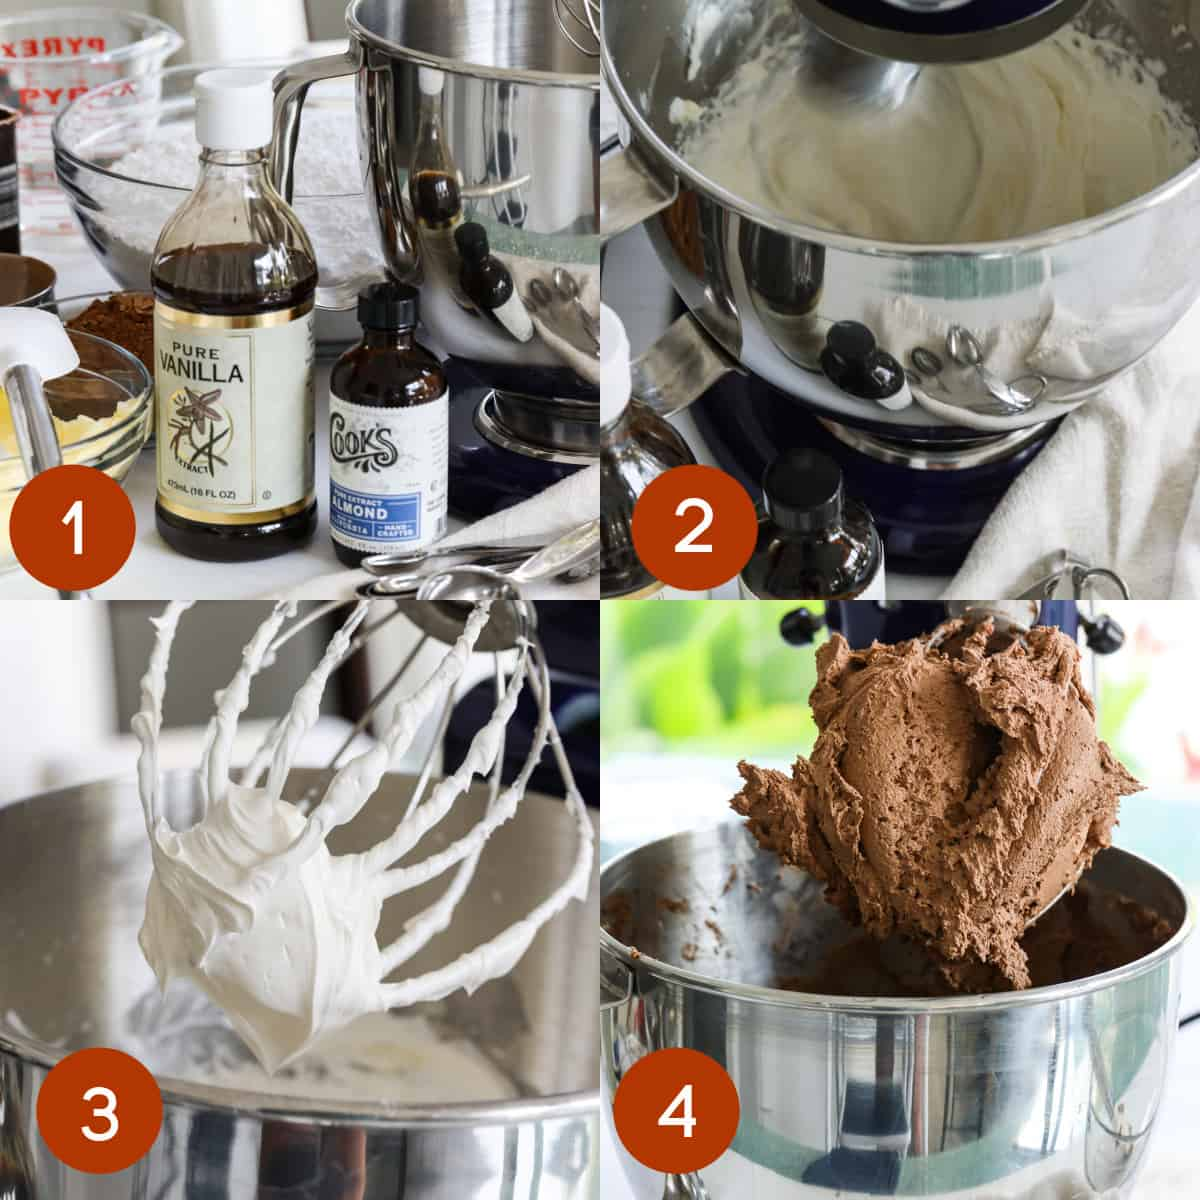 4 steps showing how to make chocolate frosting in a stand mixer from ingredients through to mixing the chocolate buttercream.